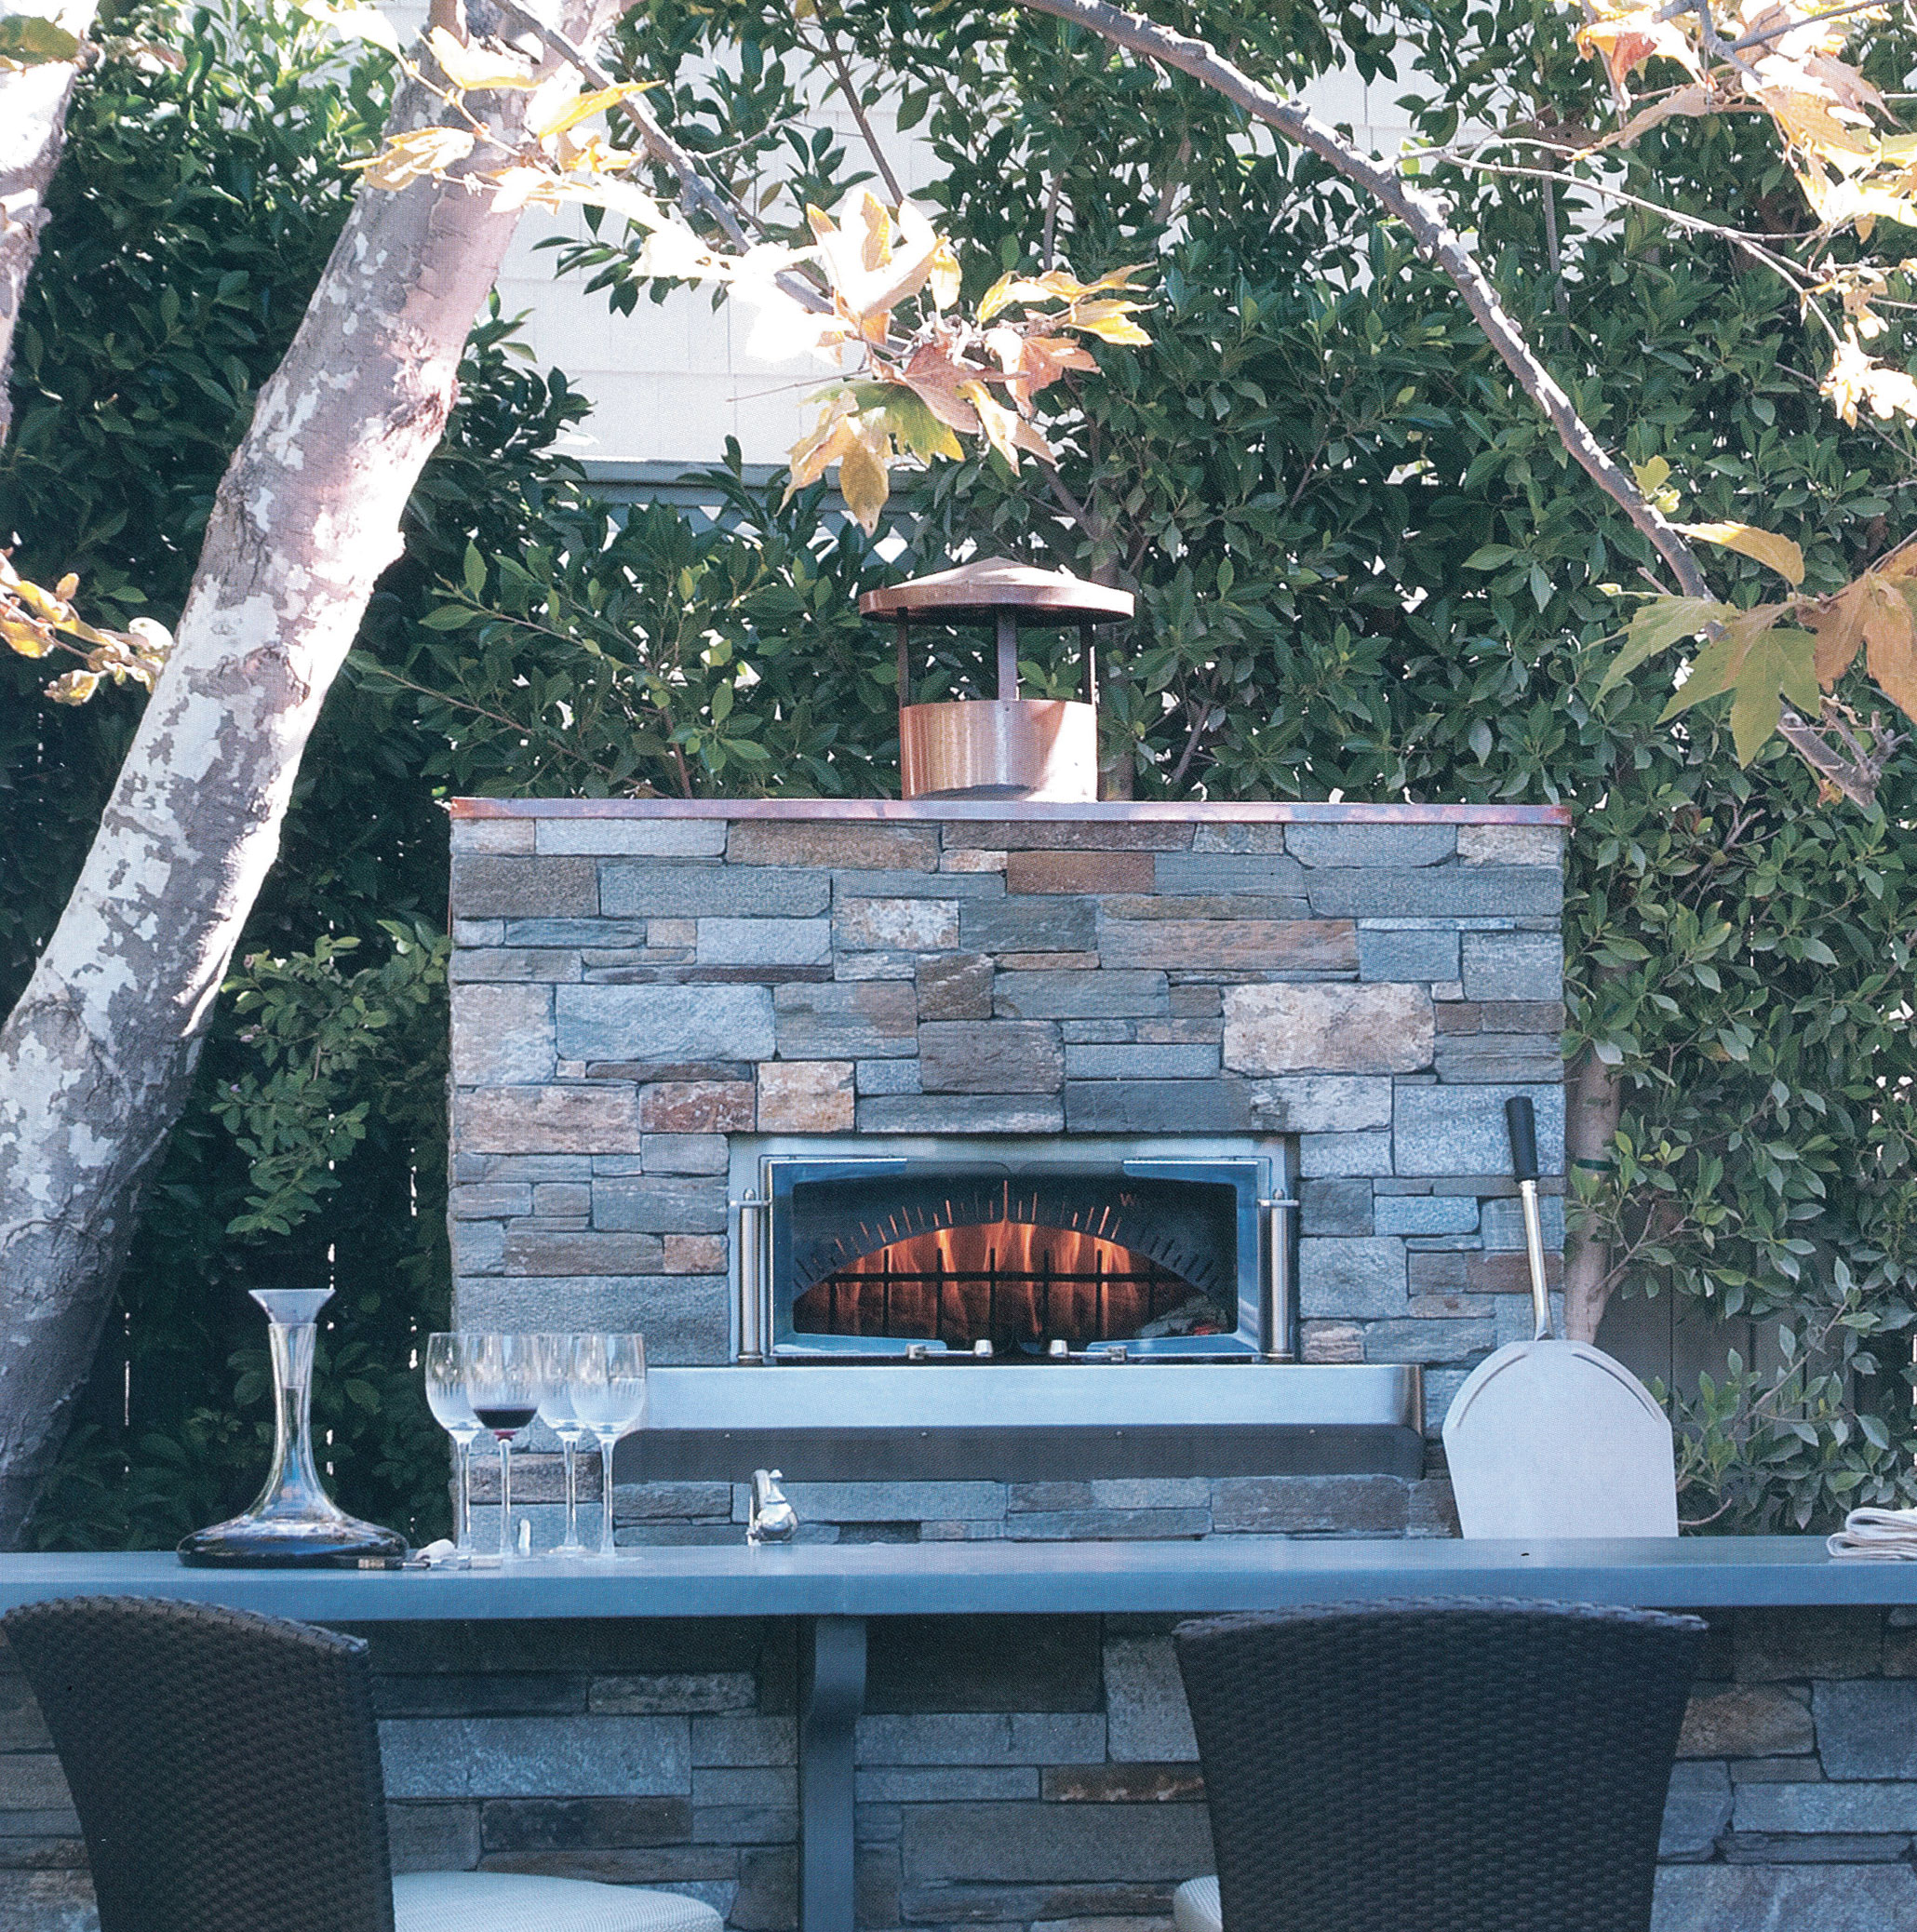 Wood Stone Home Oven From Kieffer's Appliances